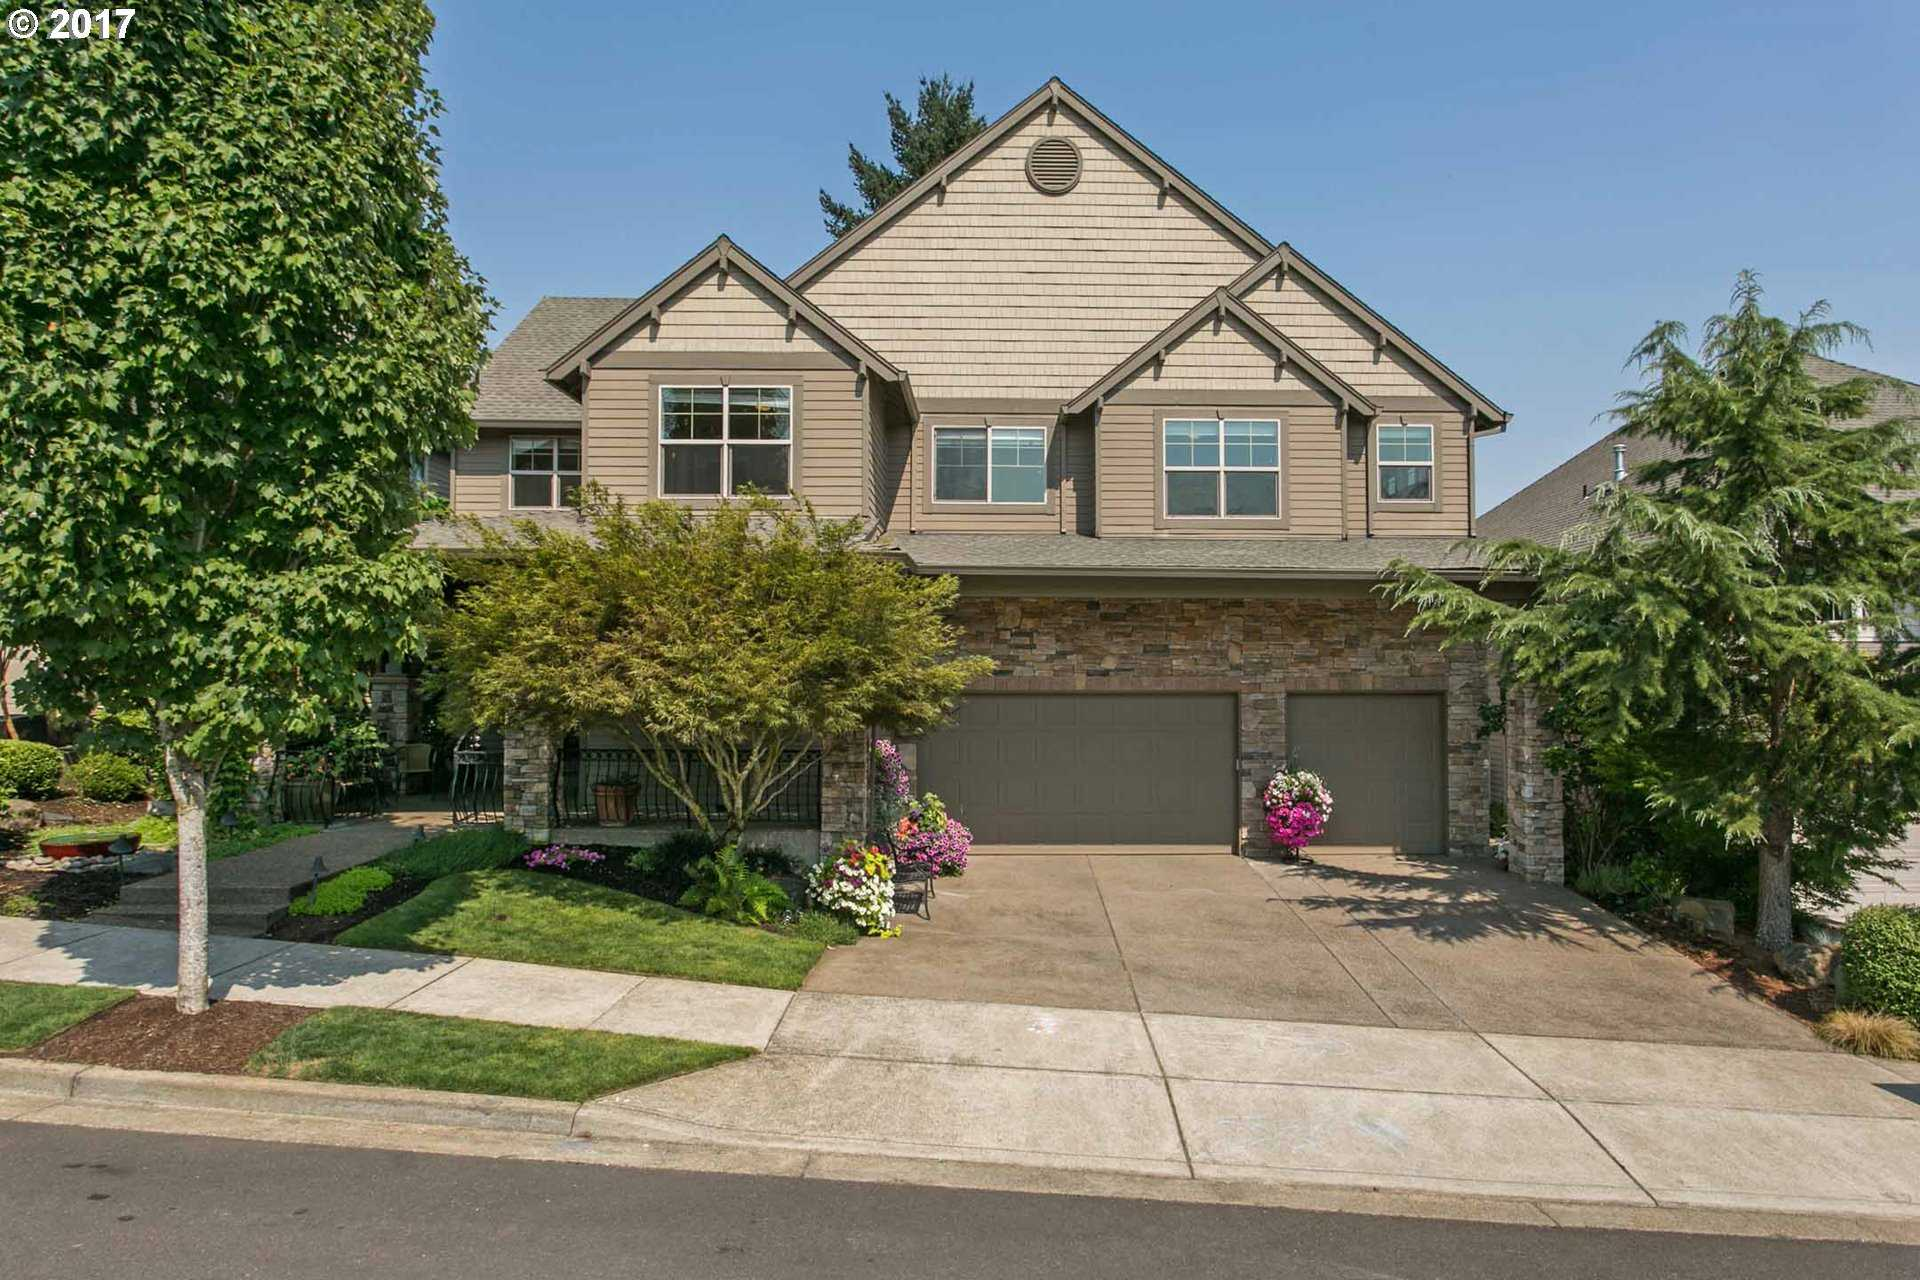 $699,000 - 4Br/4Ba -  for Sale in Graham's Crossing, Tualatin